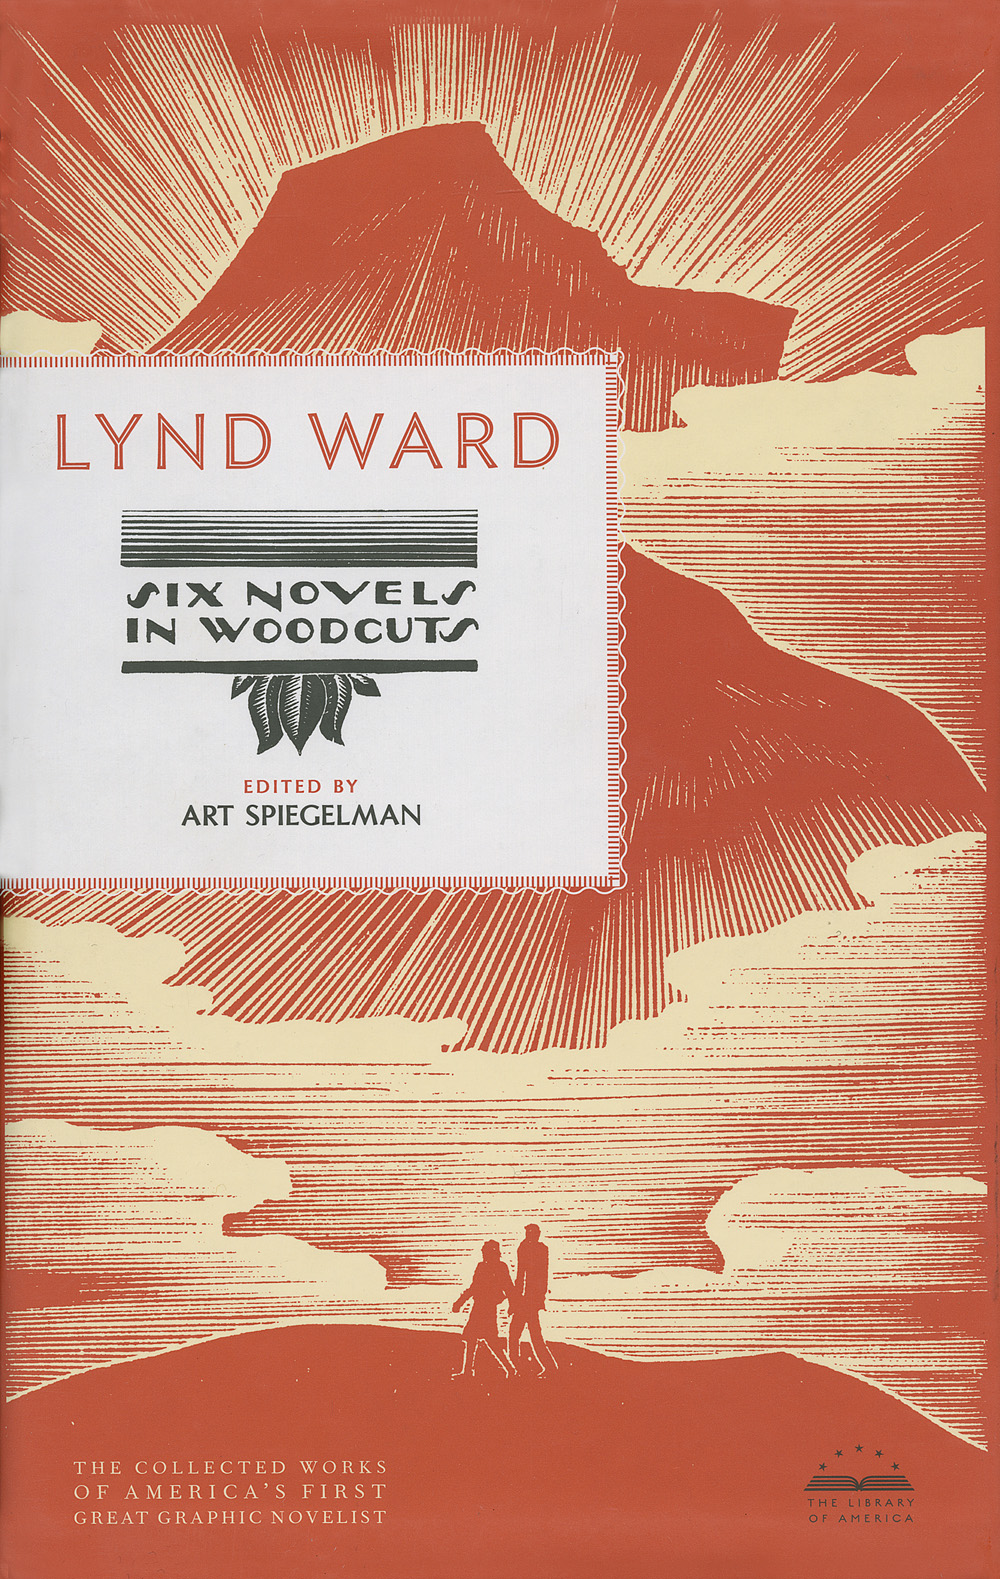 Lynd Ward, Slipcase cover of  Six Novels in Woodcuts   Edited by Art Spiegelman, published by The Library of America  Scanning of the original Lynd Ward woodcuts by John Stinehour and Stephen Stinehour at Stinehour Editions.